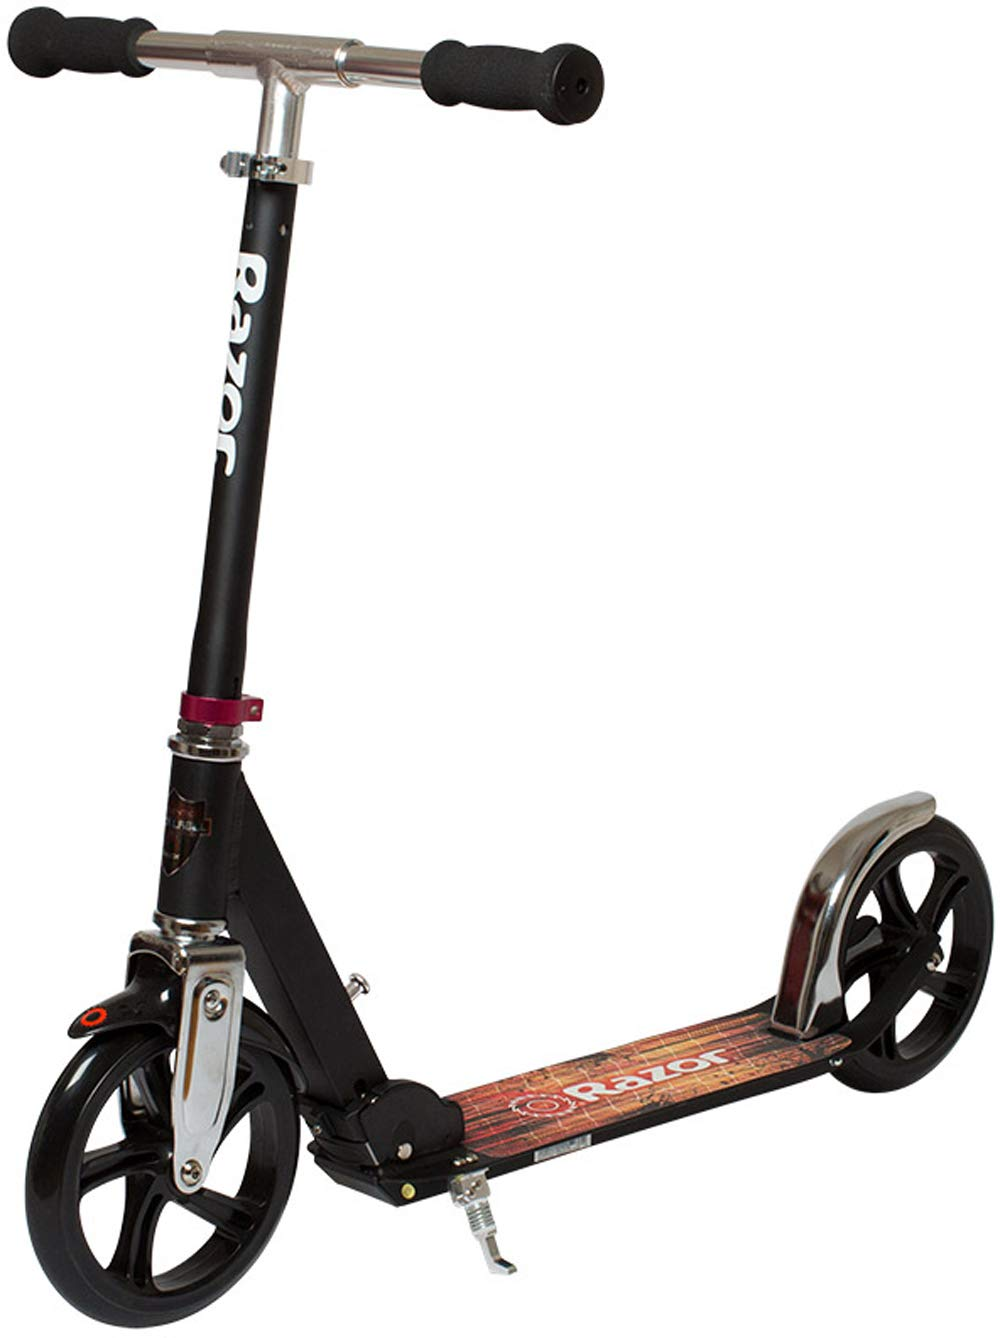 Top 10 Best Kick Scooter For Commuting - Buyer's Guide 33